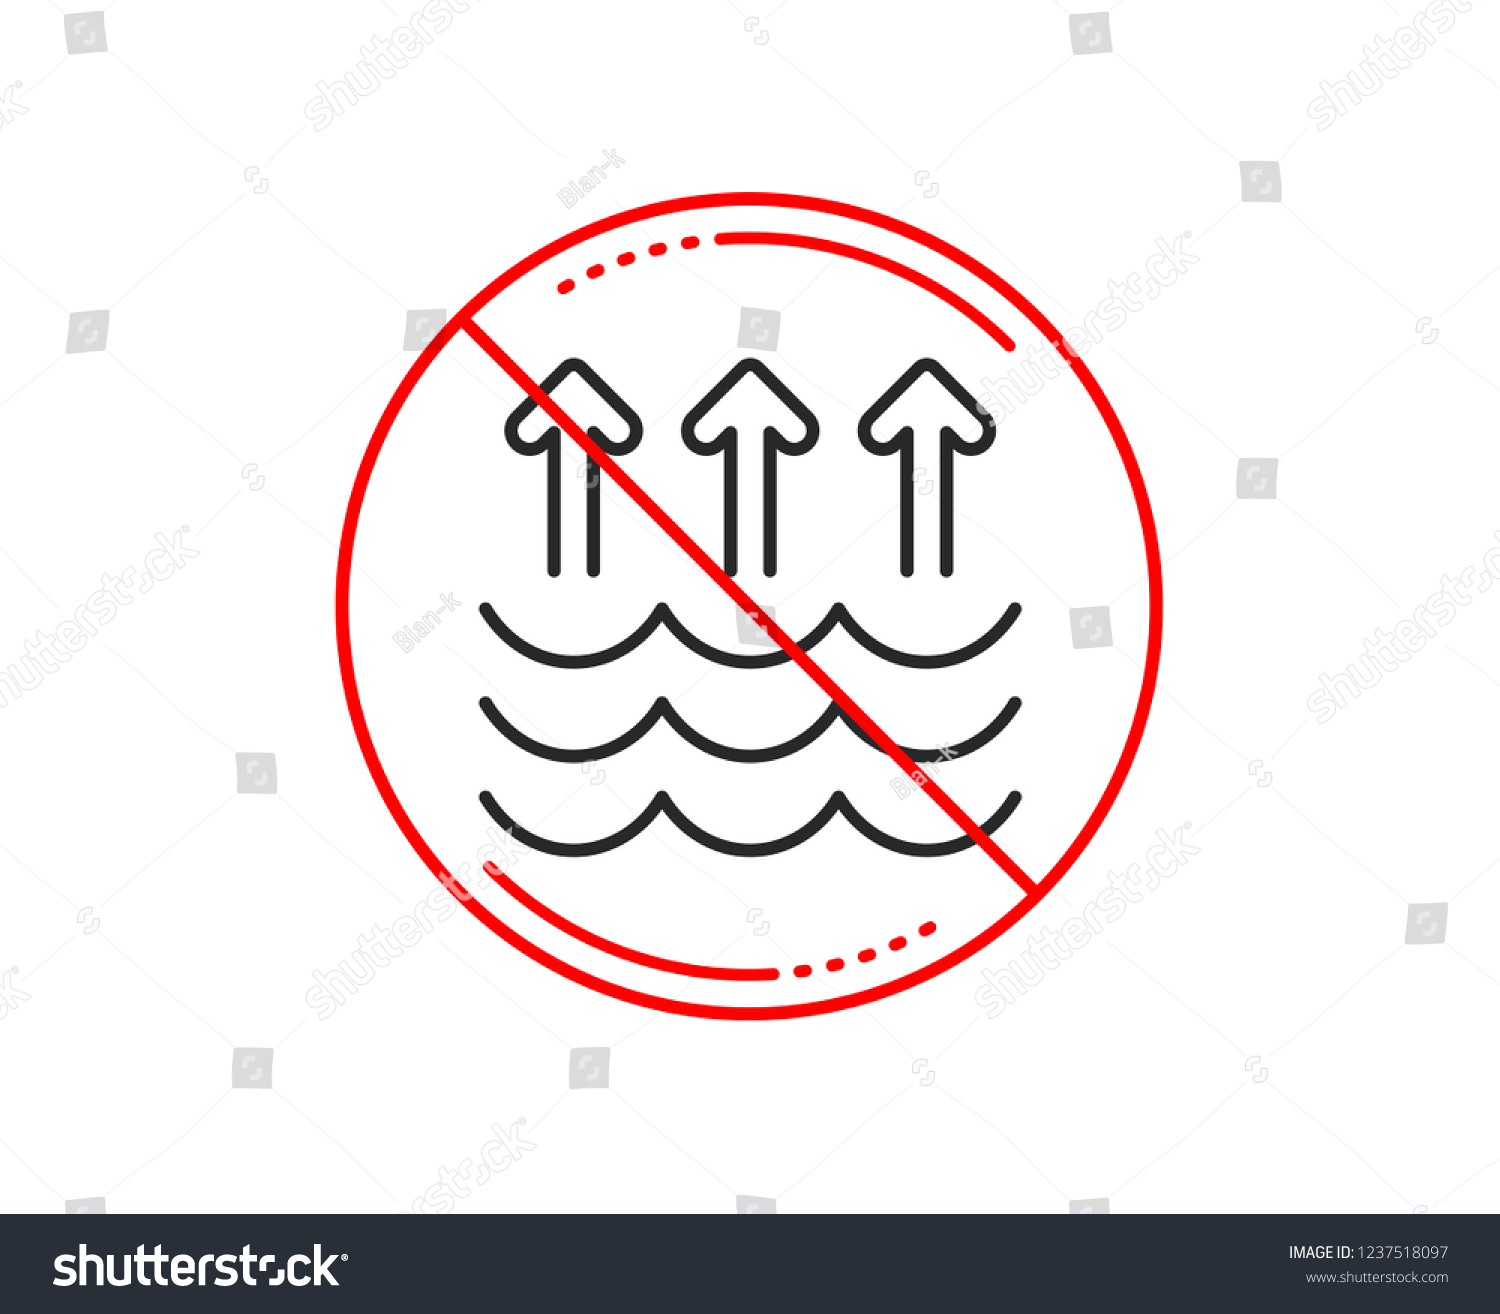 No Stop Sign Evaporation Line Icon Stock Vector (Royalty